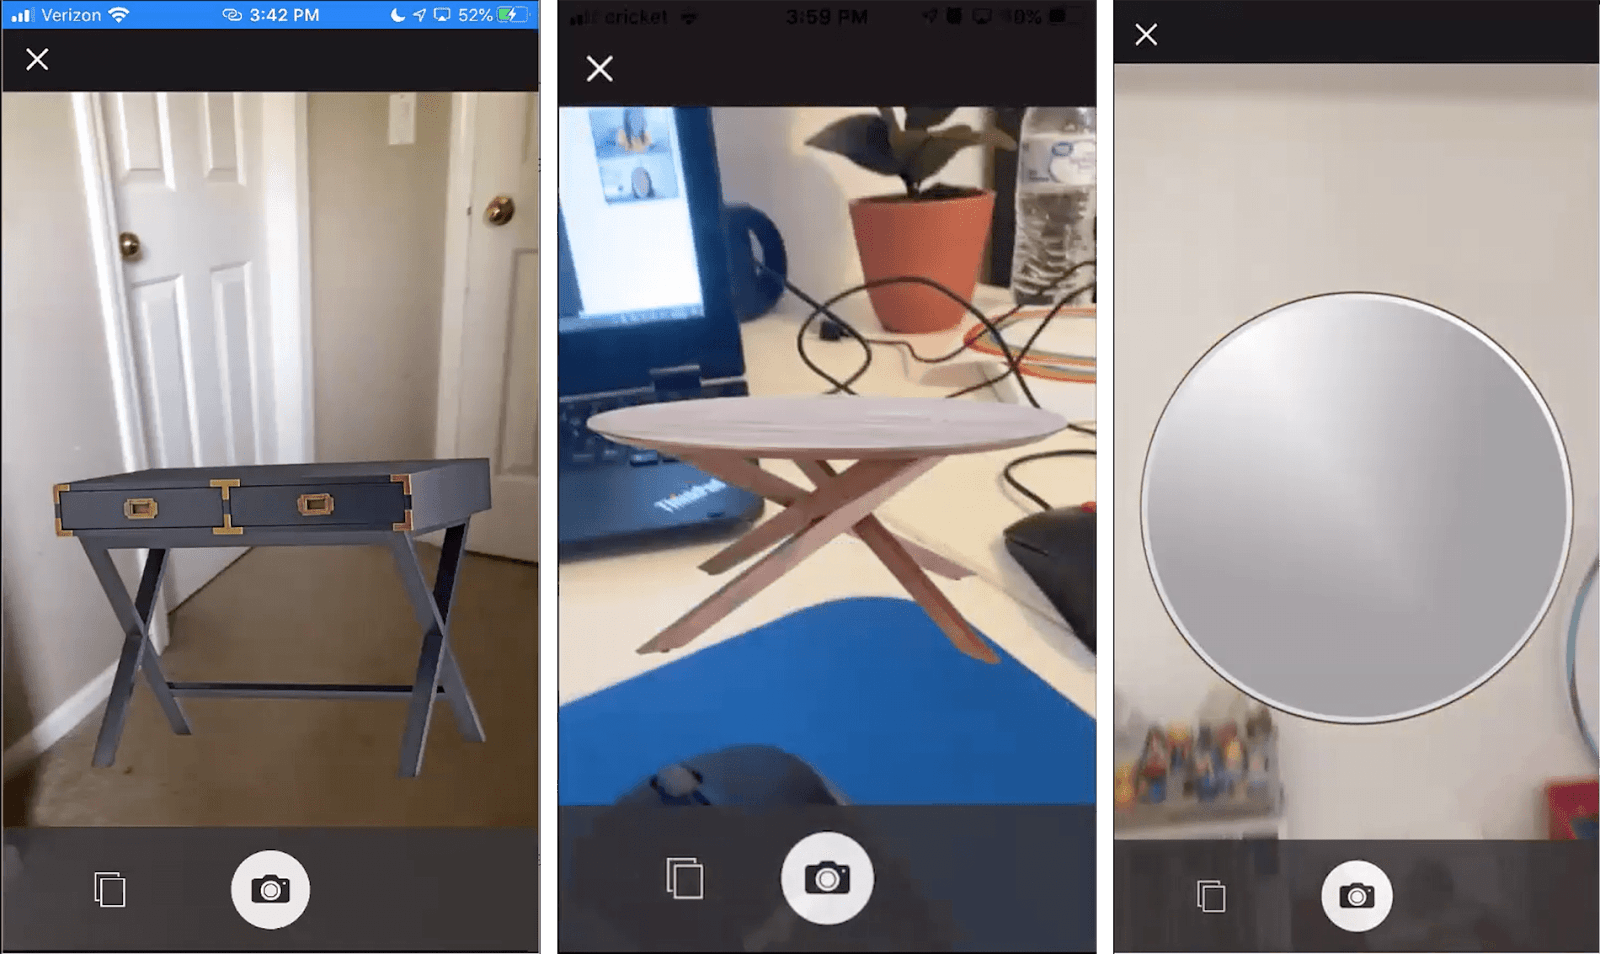 3 screenshots from usability tests showing a 2D desk, coffee table, and mirror placed in each user's room inaccurately.